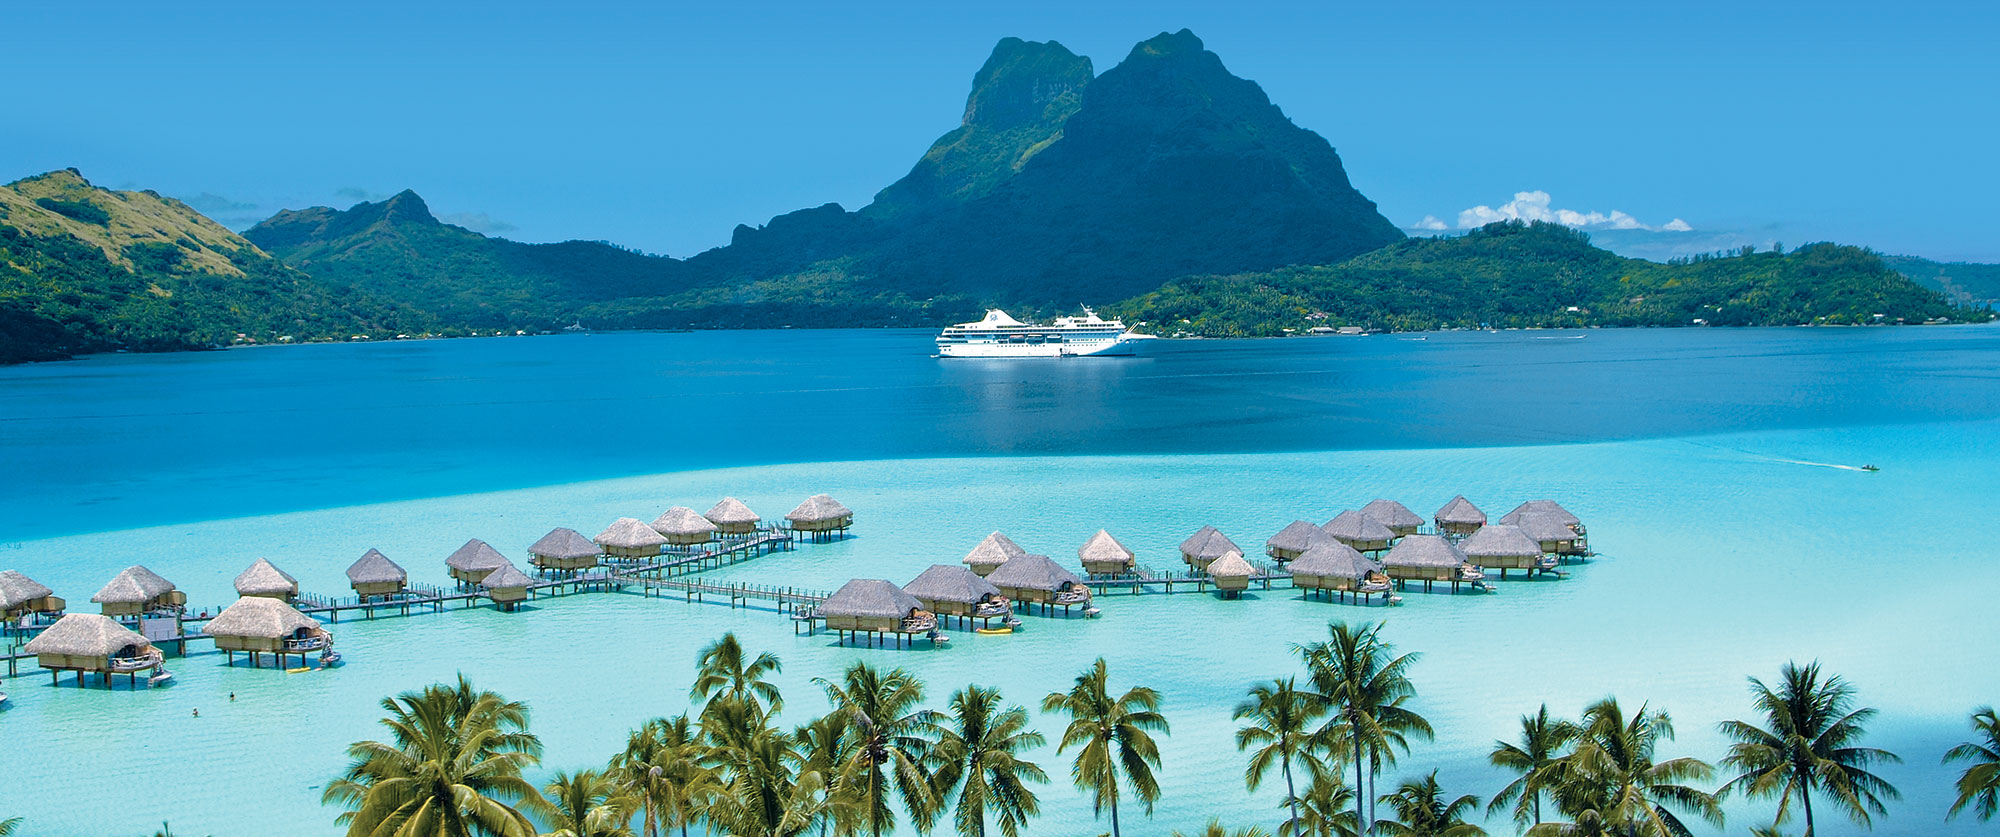 Tahiti Cruises - Bora Bora Cruise - Vacations to Bora Bora